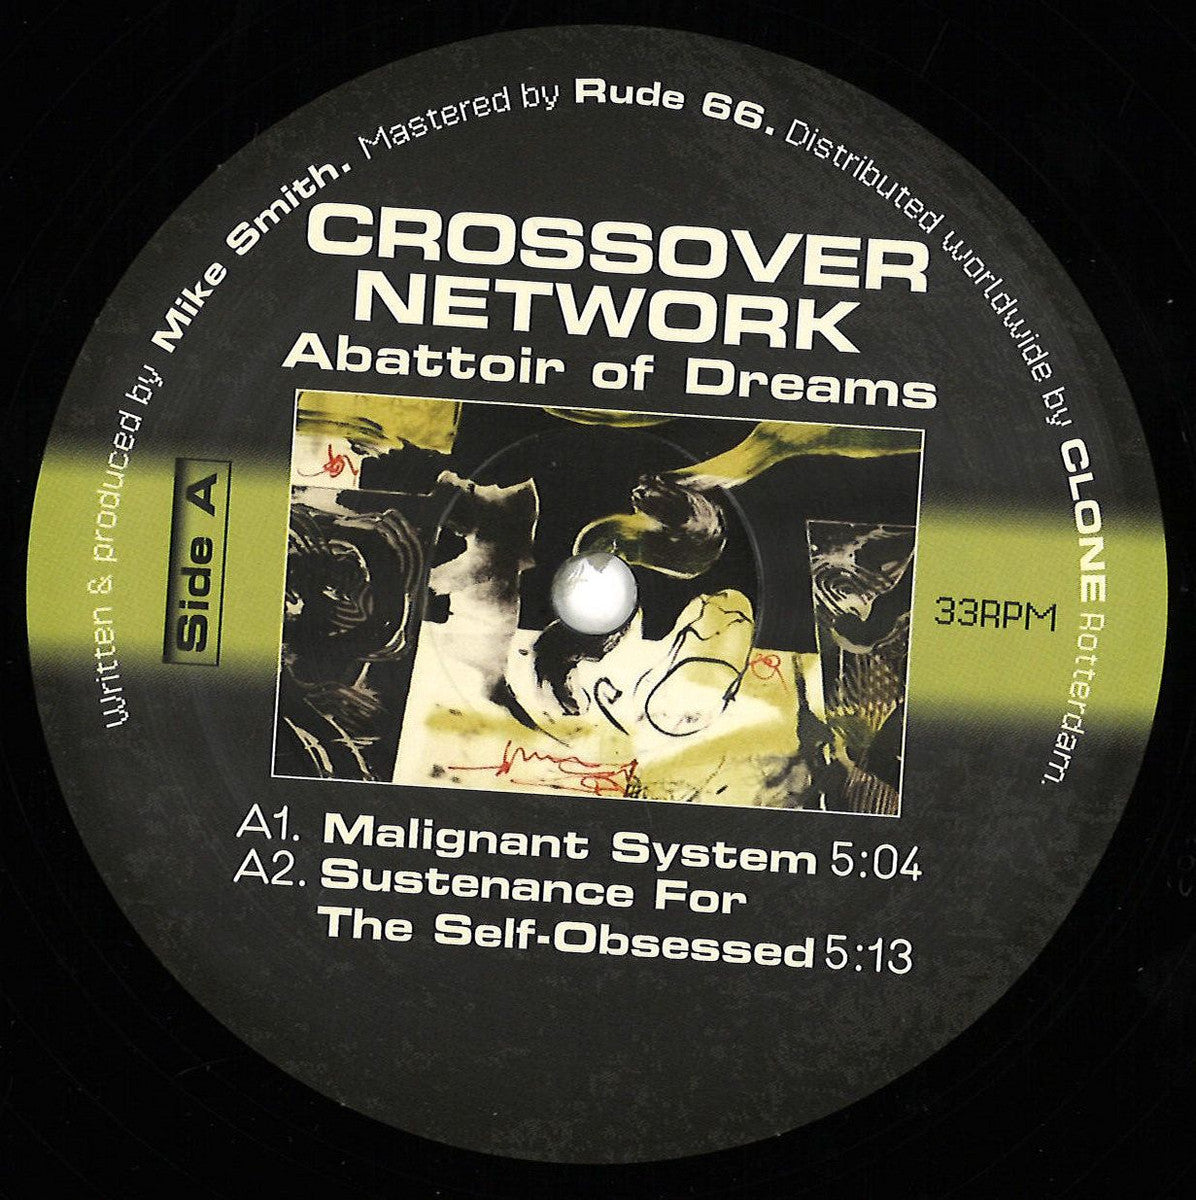 Crossover Network - Abattoir of Dreams 12""